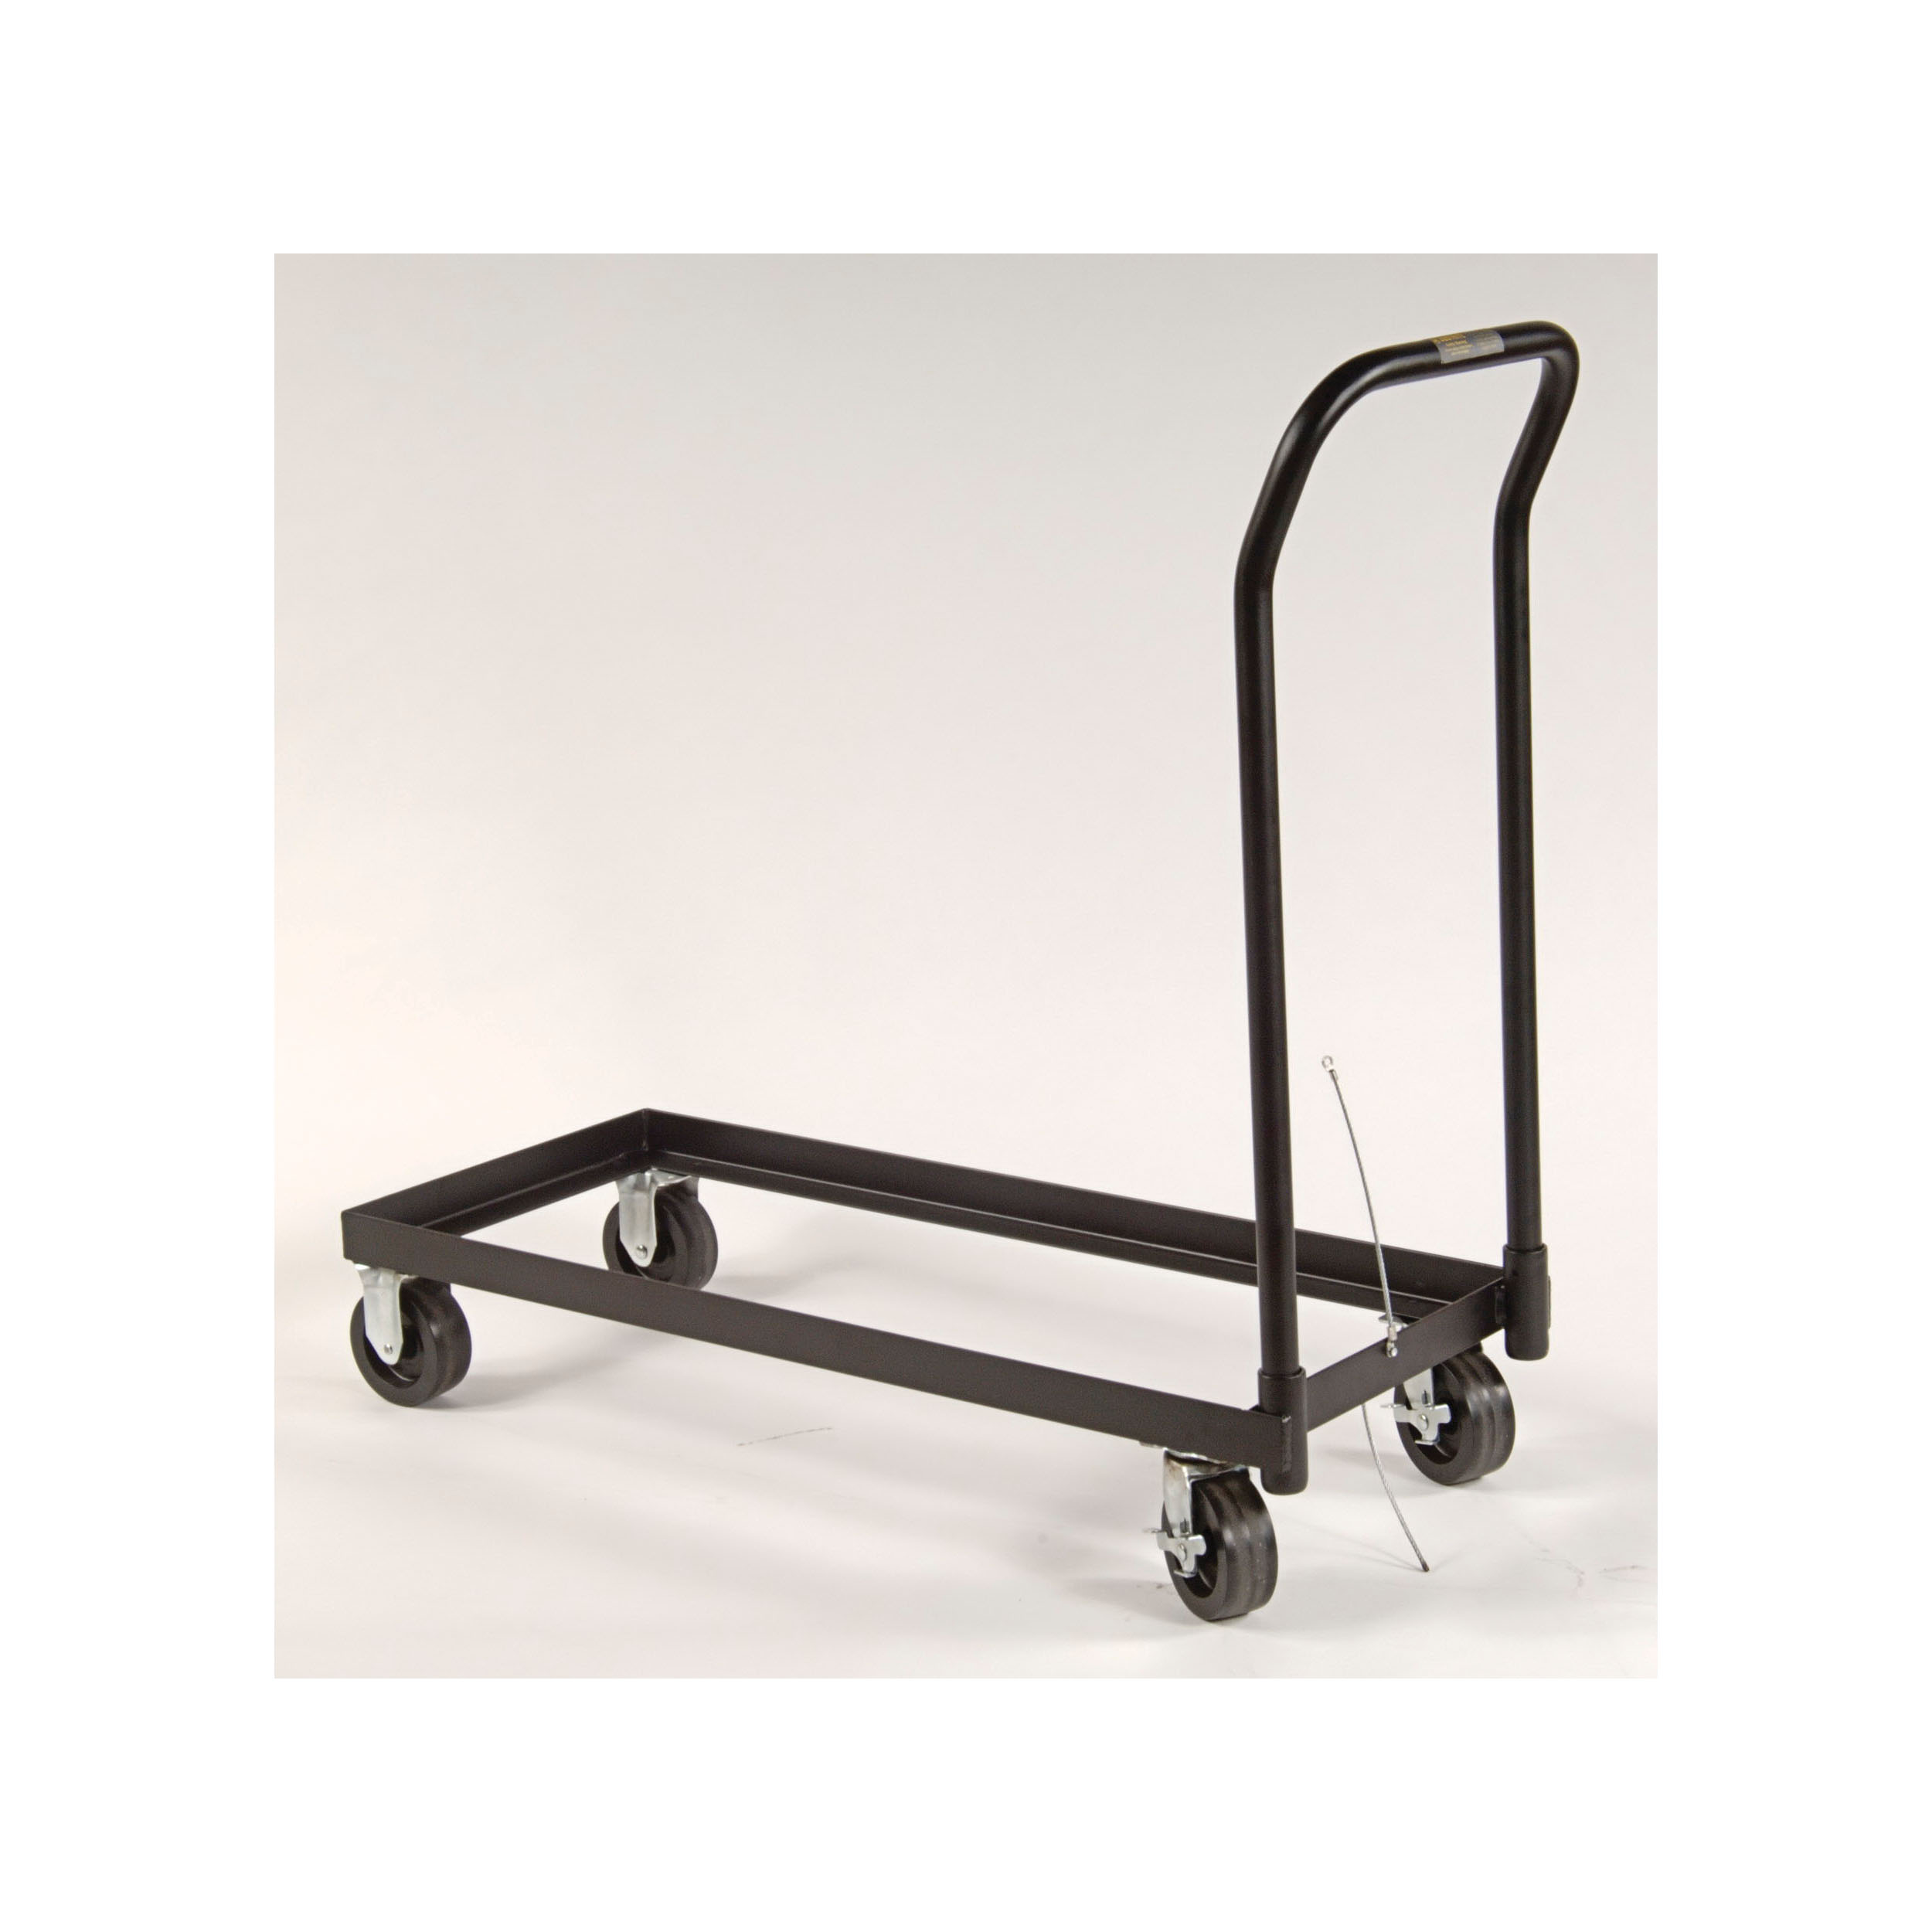 Justrite® 84001 Rolling Cart With 5 in Poly Caster Wheels, For Use With 30 gal and Piggyback Safety Cabinet, Black